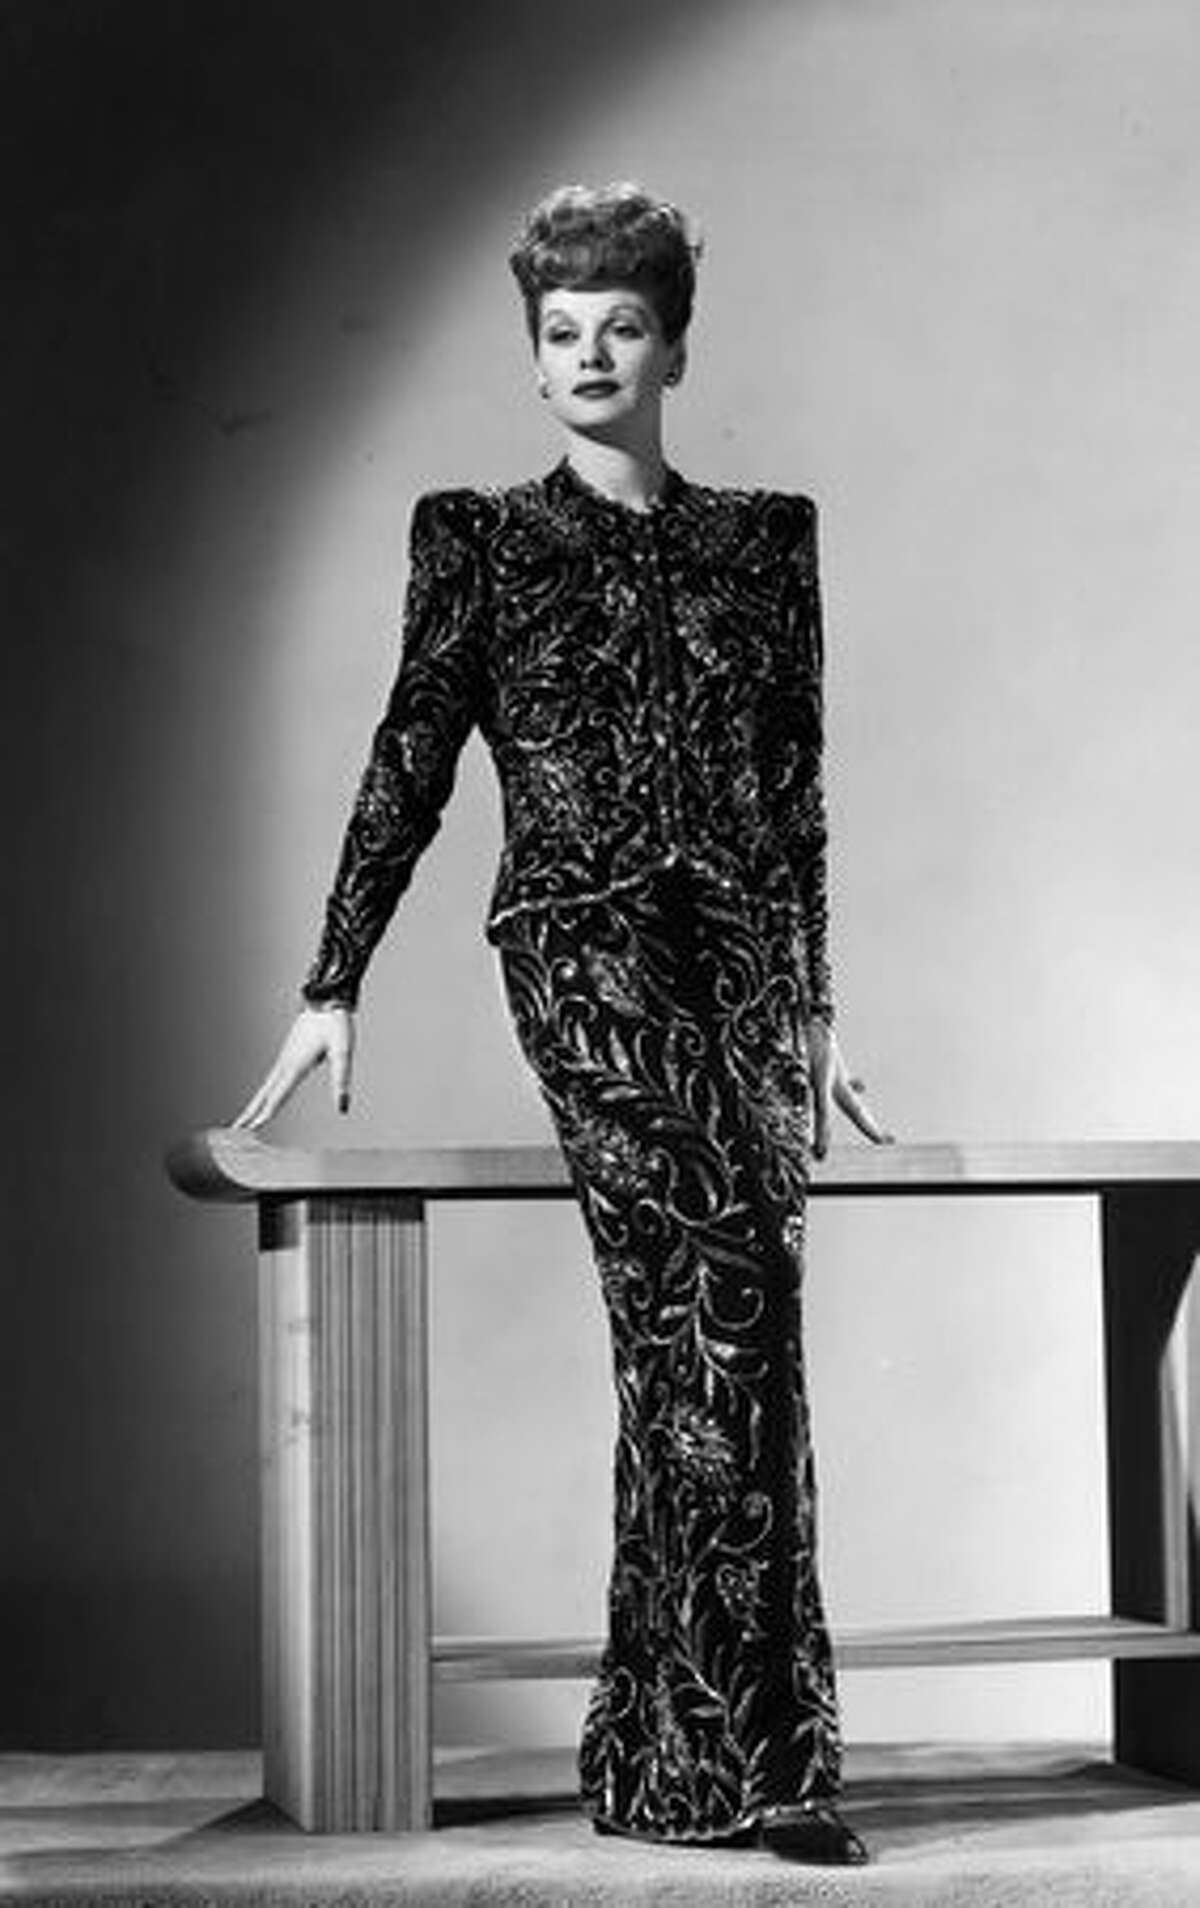 Lucille Ball (1911-1989), queen of American comedy who had a prolific film career in the '30s, '40s and '50s before migrating to television. Notable role in the decade: Sally Elliott in